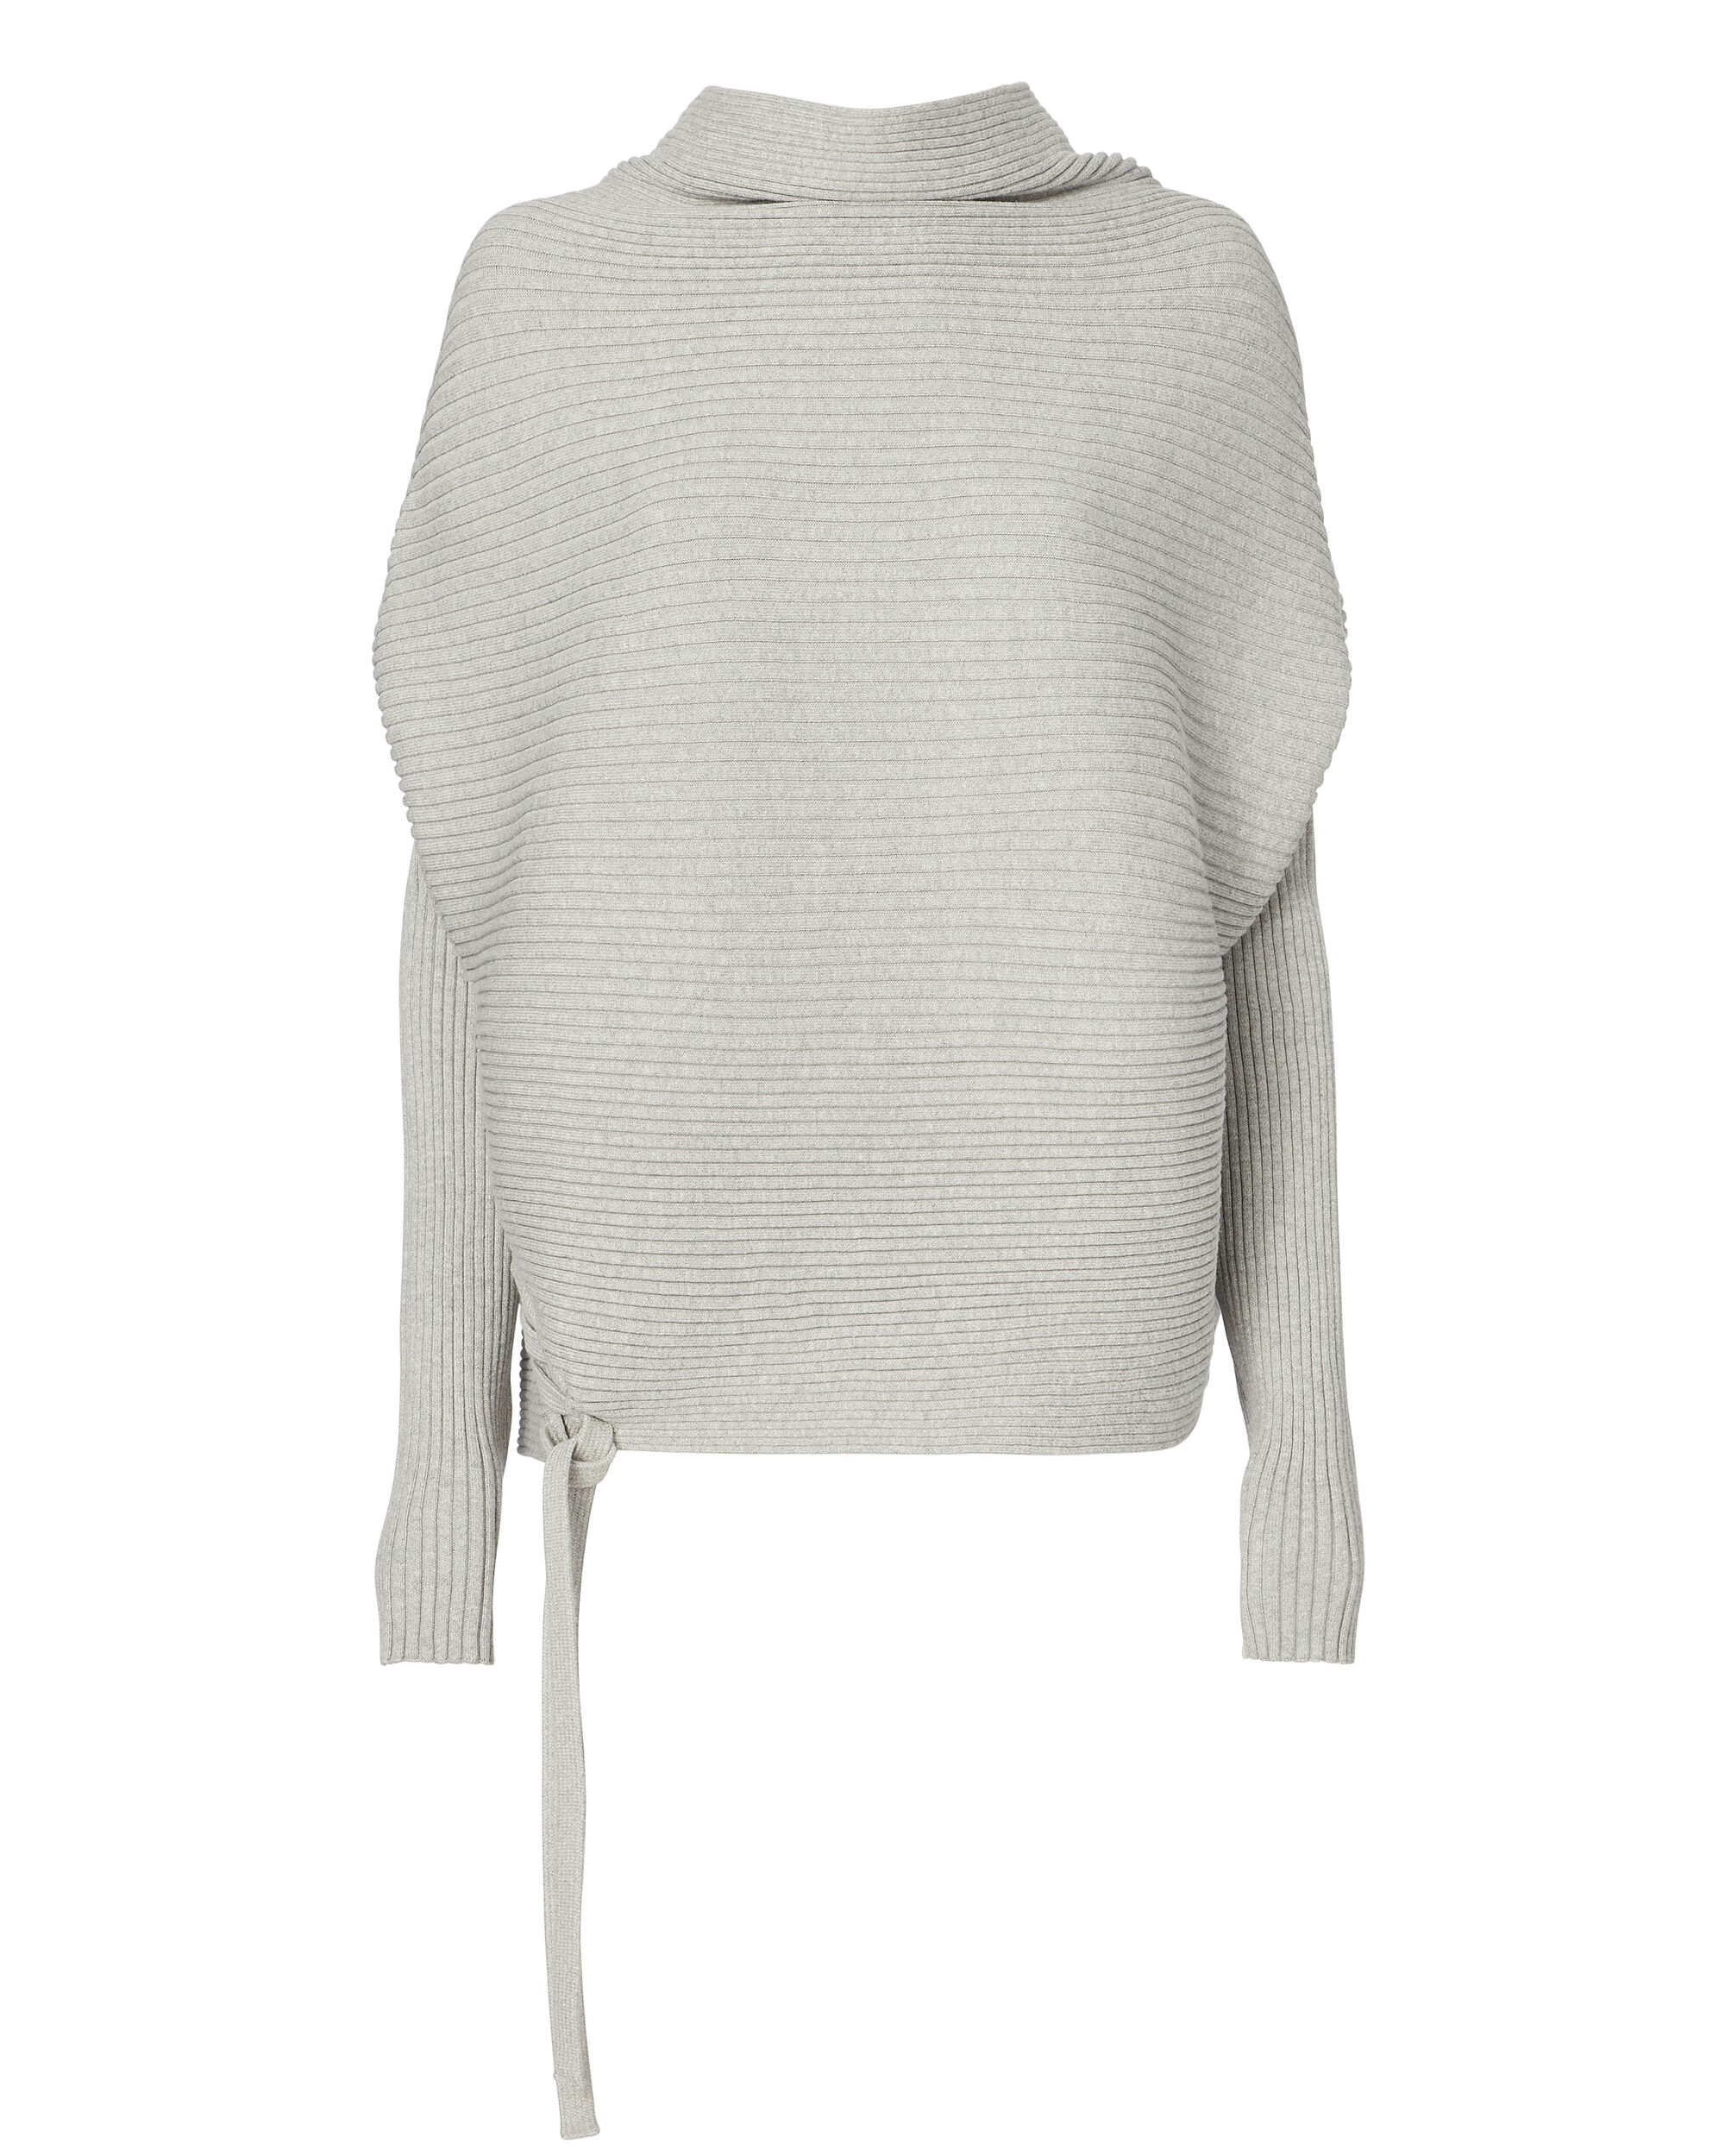 Ribly Lace-Up Side Sweater, GREY, hi-res